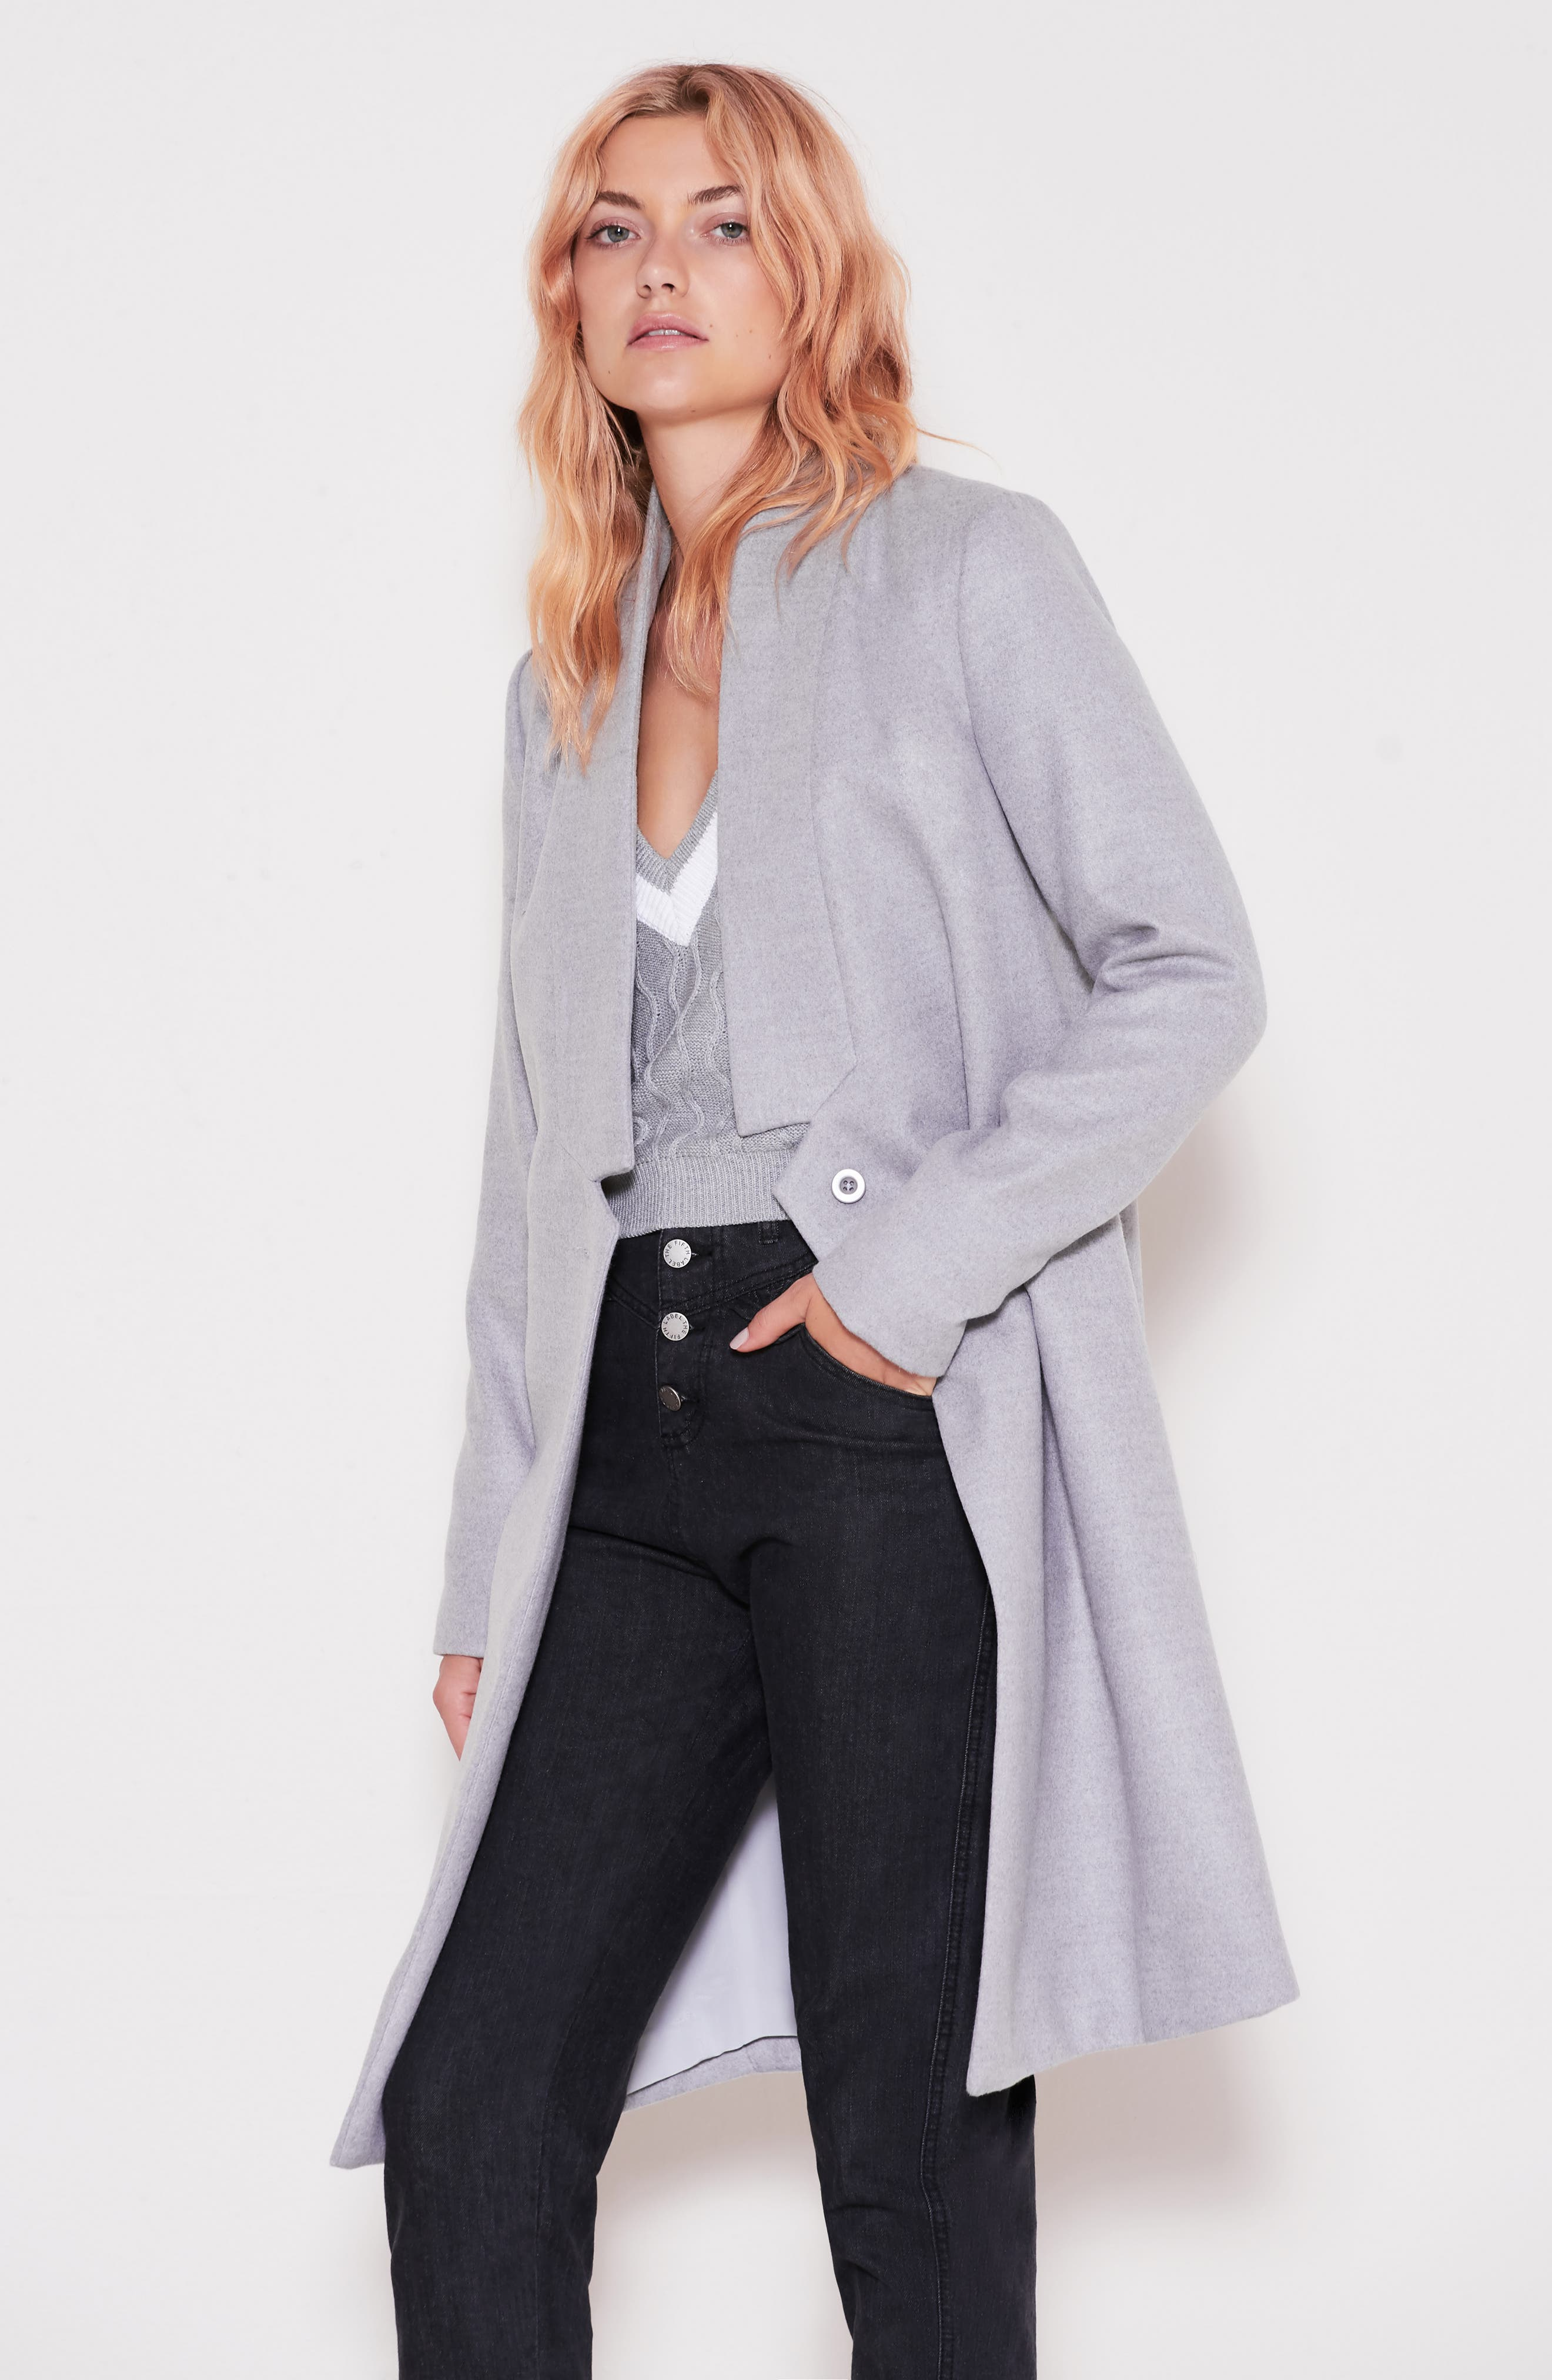 Seminar Coat,                             Alternate thumbnail 8, color,                             GREY MARLE